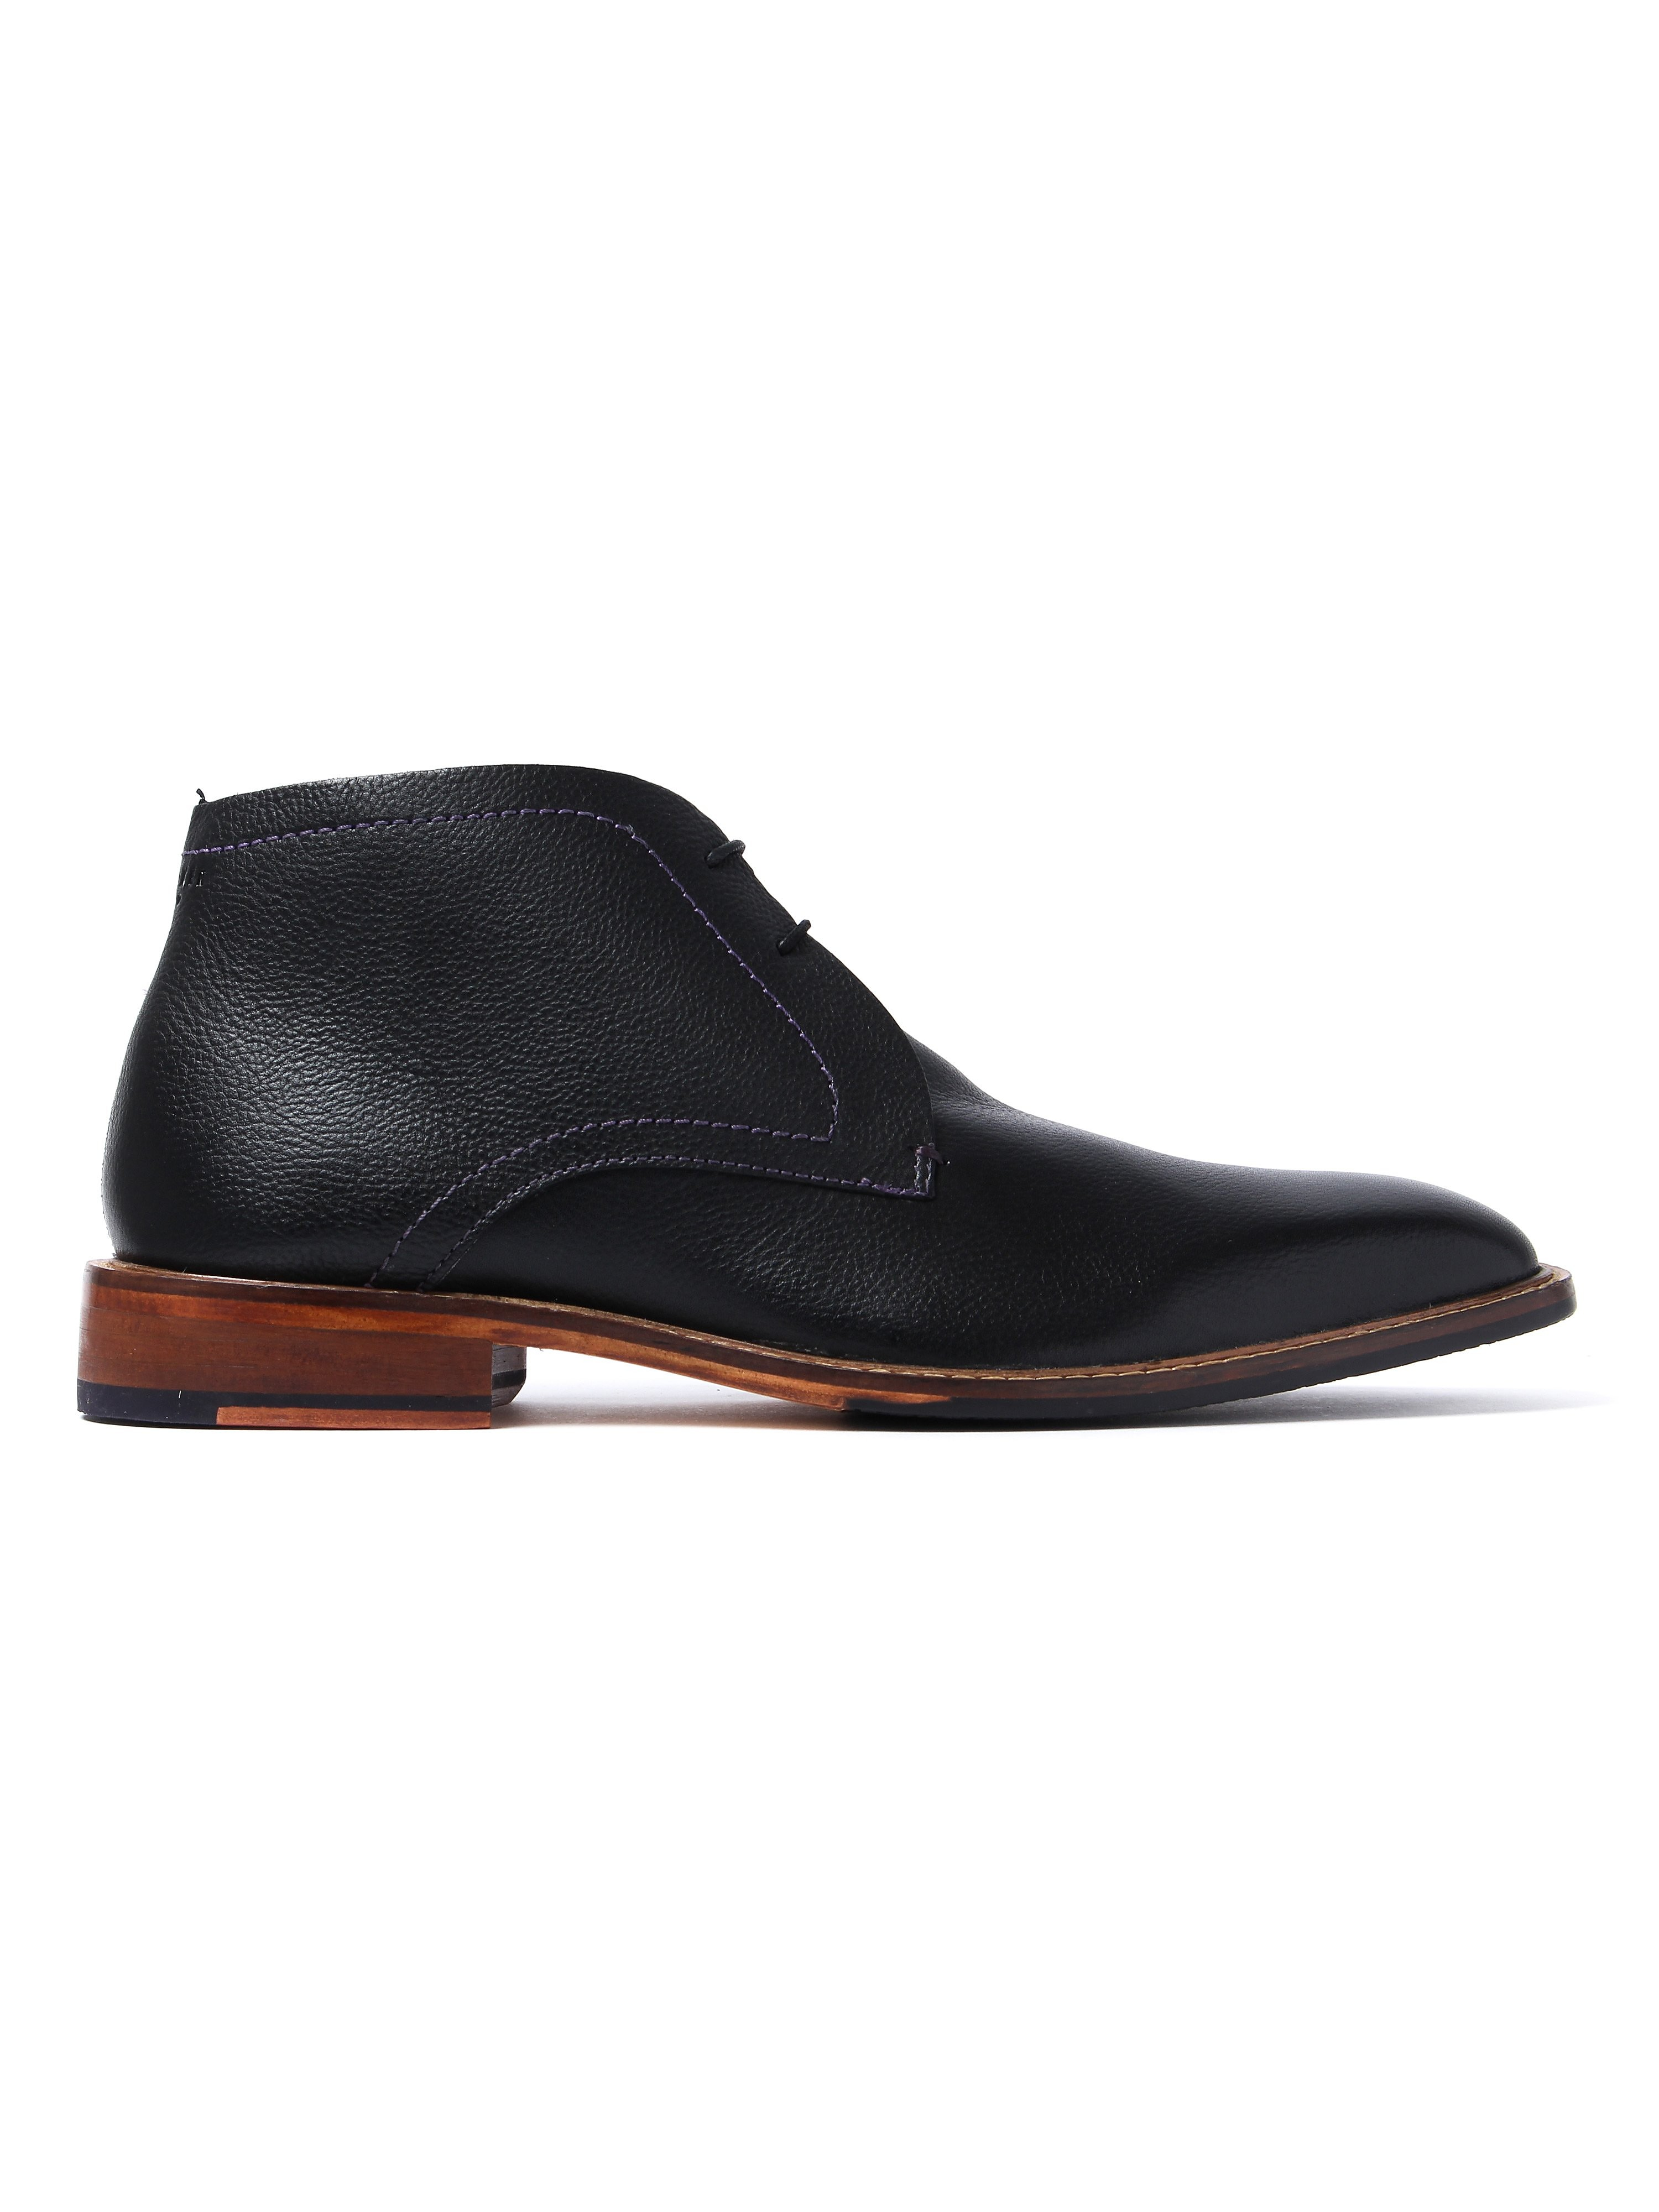 Ted Baker Men's Torsdi Leather Chukka Boots - Black